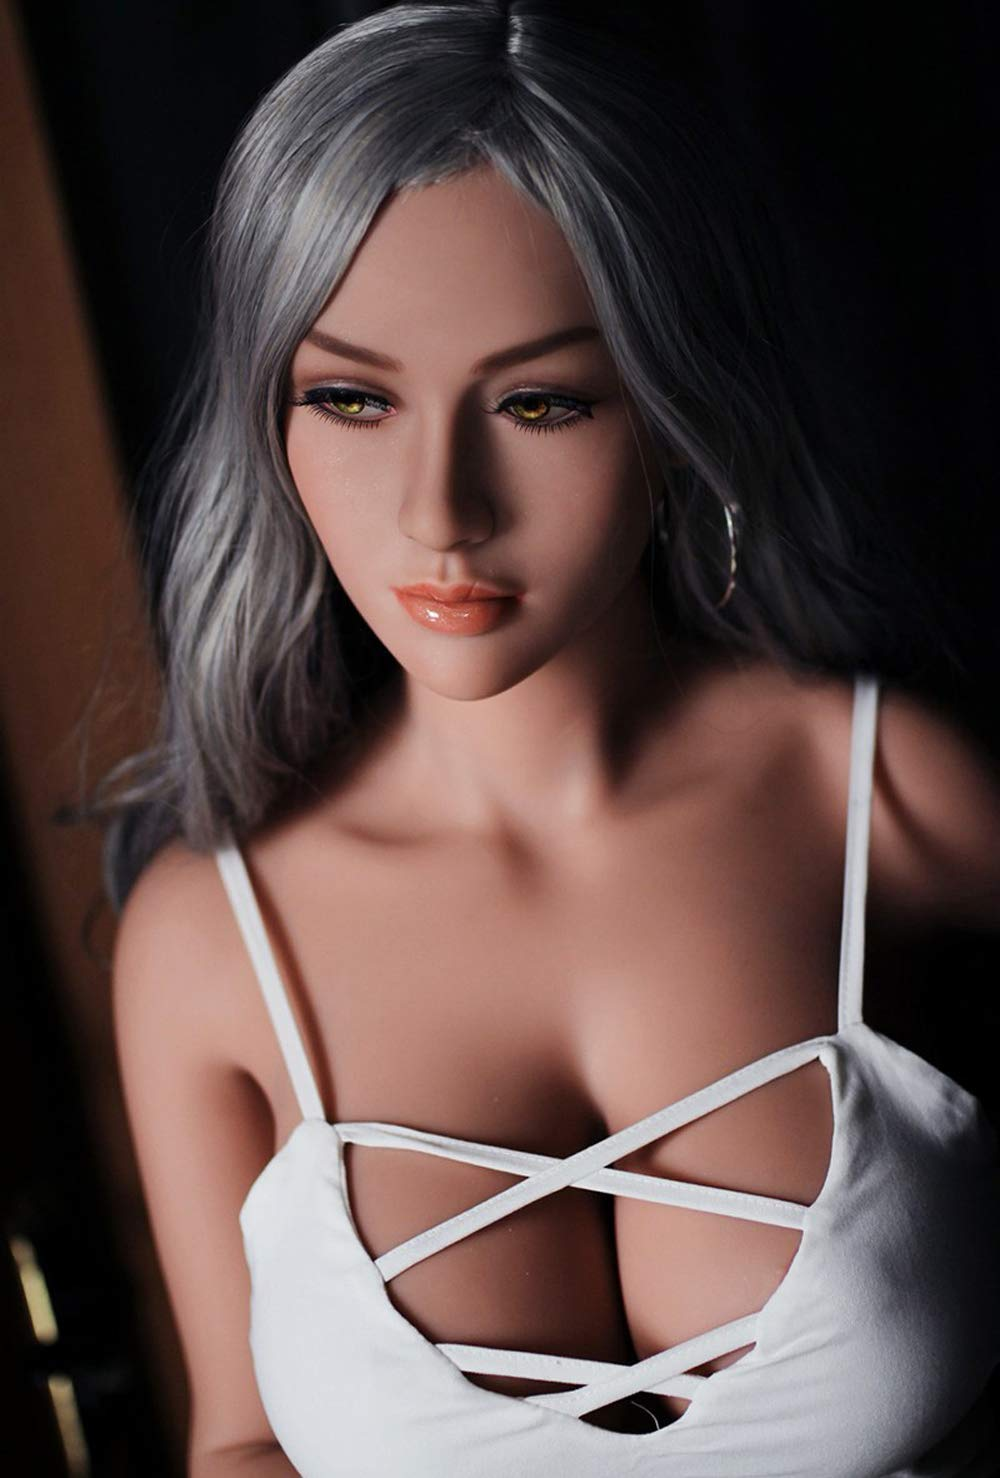 Sex Doll for Men Lifelike Life Size Adult Toy Realistic Doll Men Doles 158cm-F-Cup by XJDOLL (Image #2)